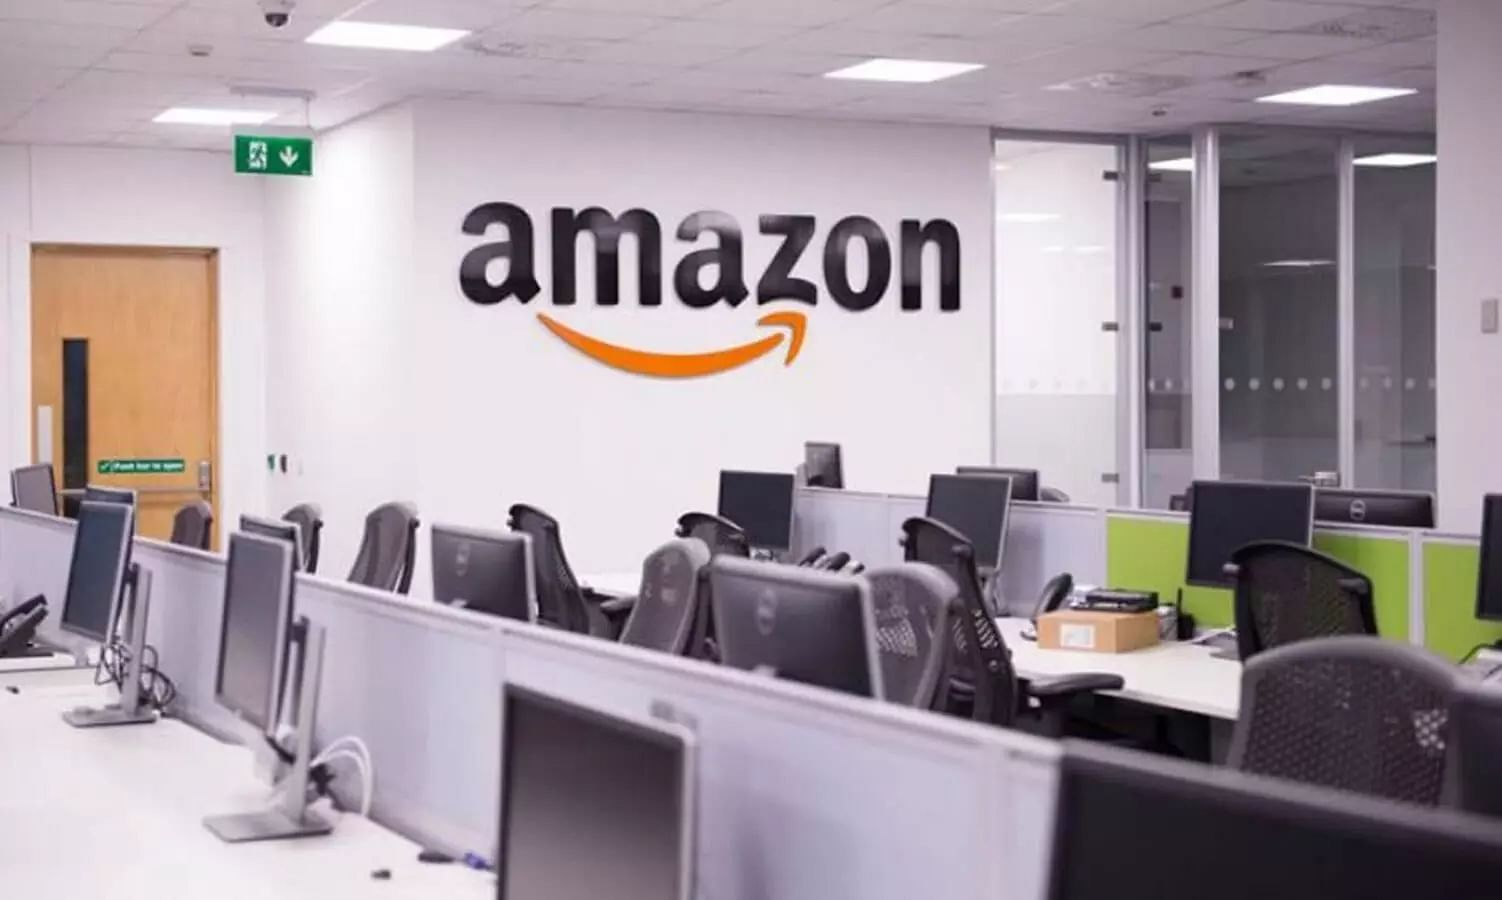 After Indias backlash, Amazon takes down products listing with Hindu symbols